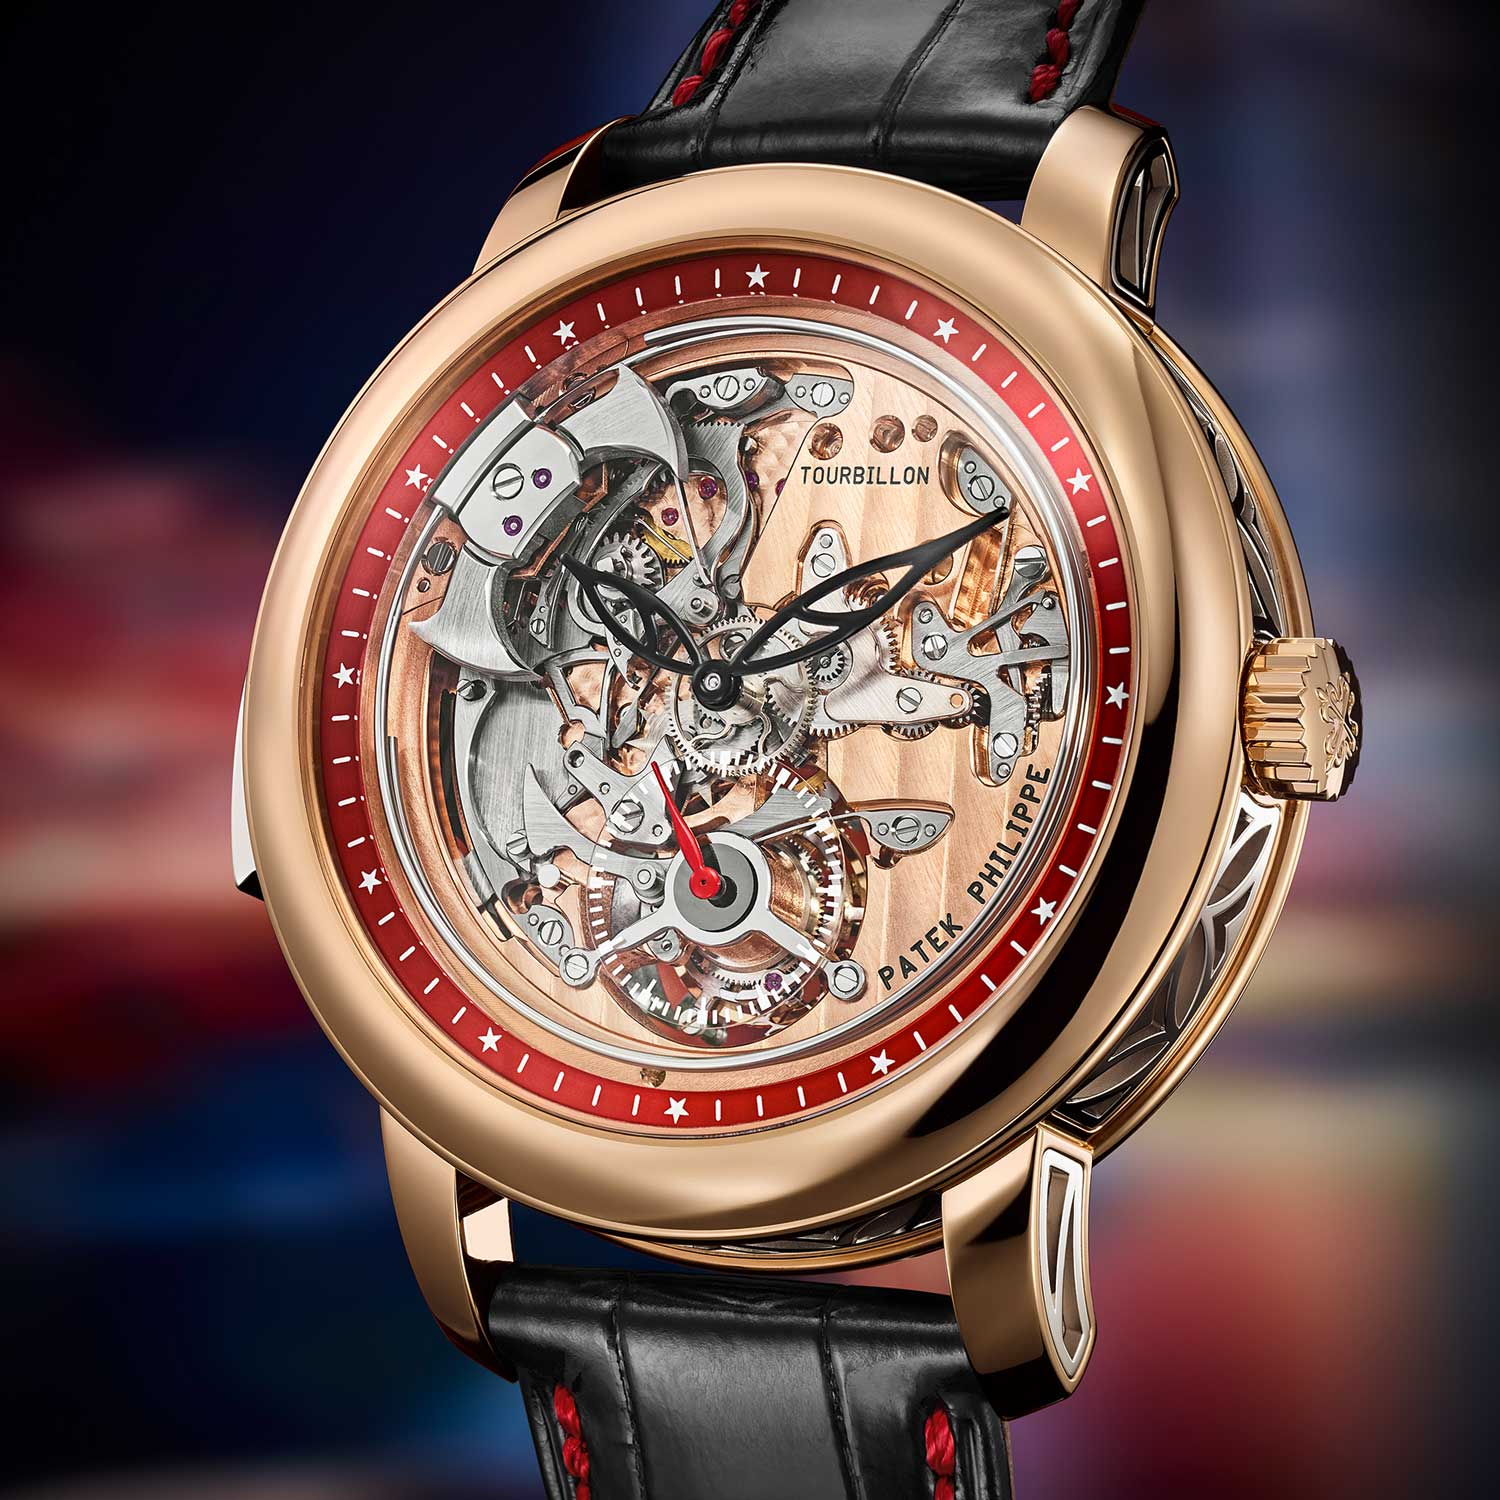 Patek Philippe Ref. 5303R Grand Complication in Rose Gold introduced on the occasion of the Watch Art Grand Exhibition held in Singapore (September 2019)